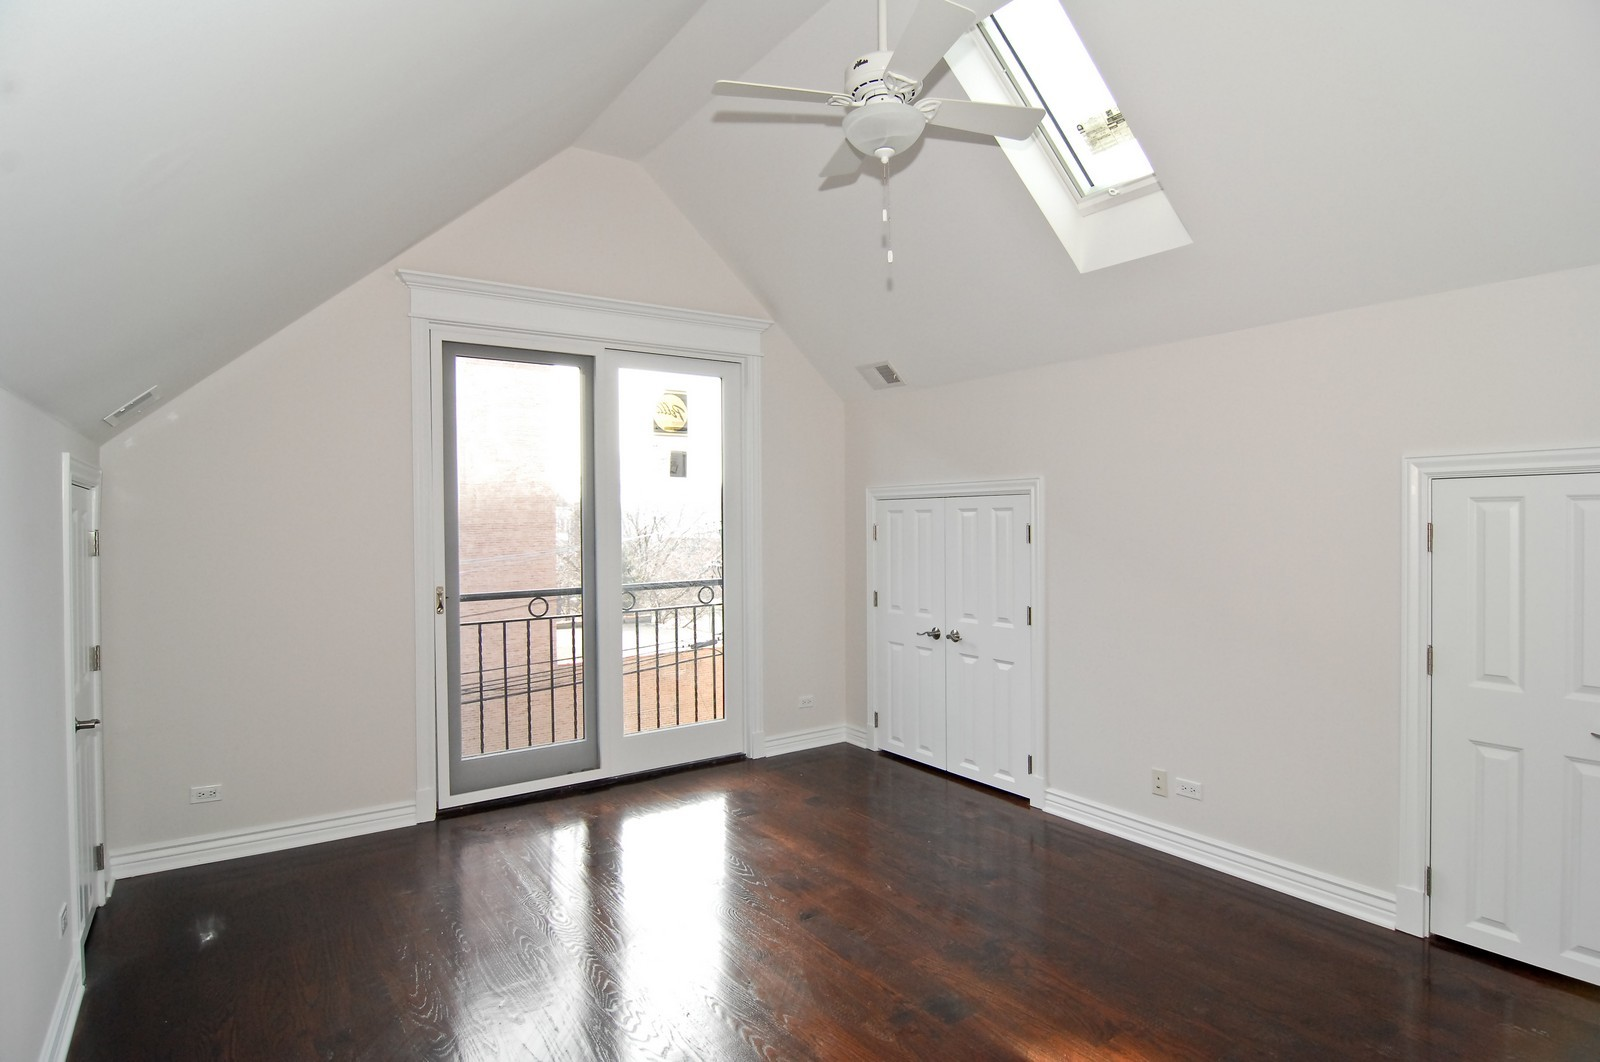 Real Estate Photography - 1845 W. Newport, Chicago, IL, 60657 - Location 2